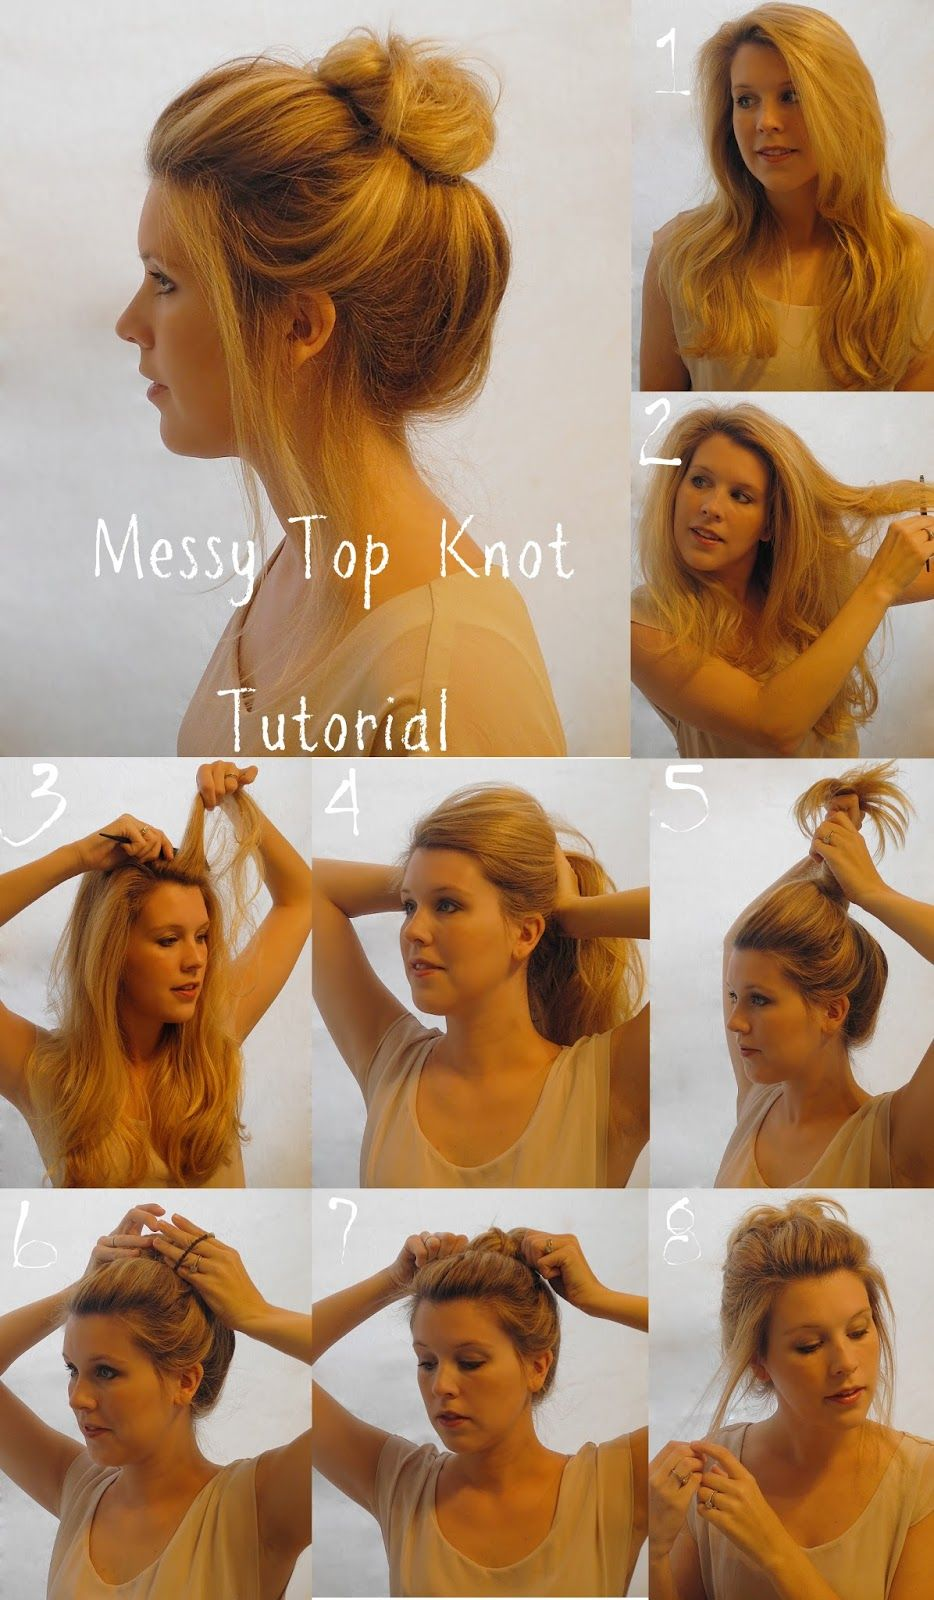 Messy top knot cute pinterest messy buns tutorials and hair